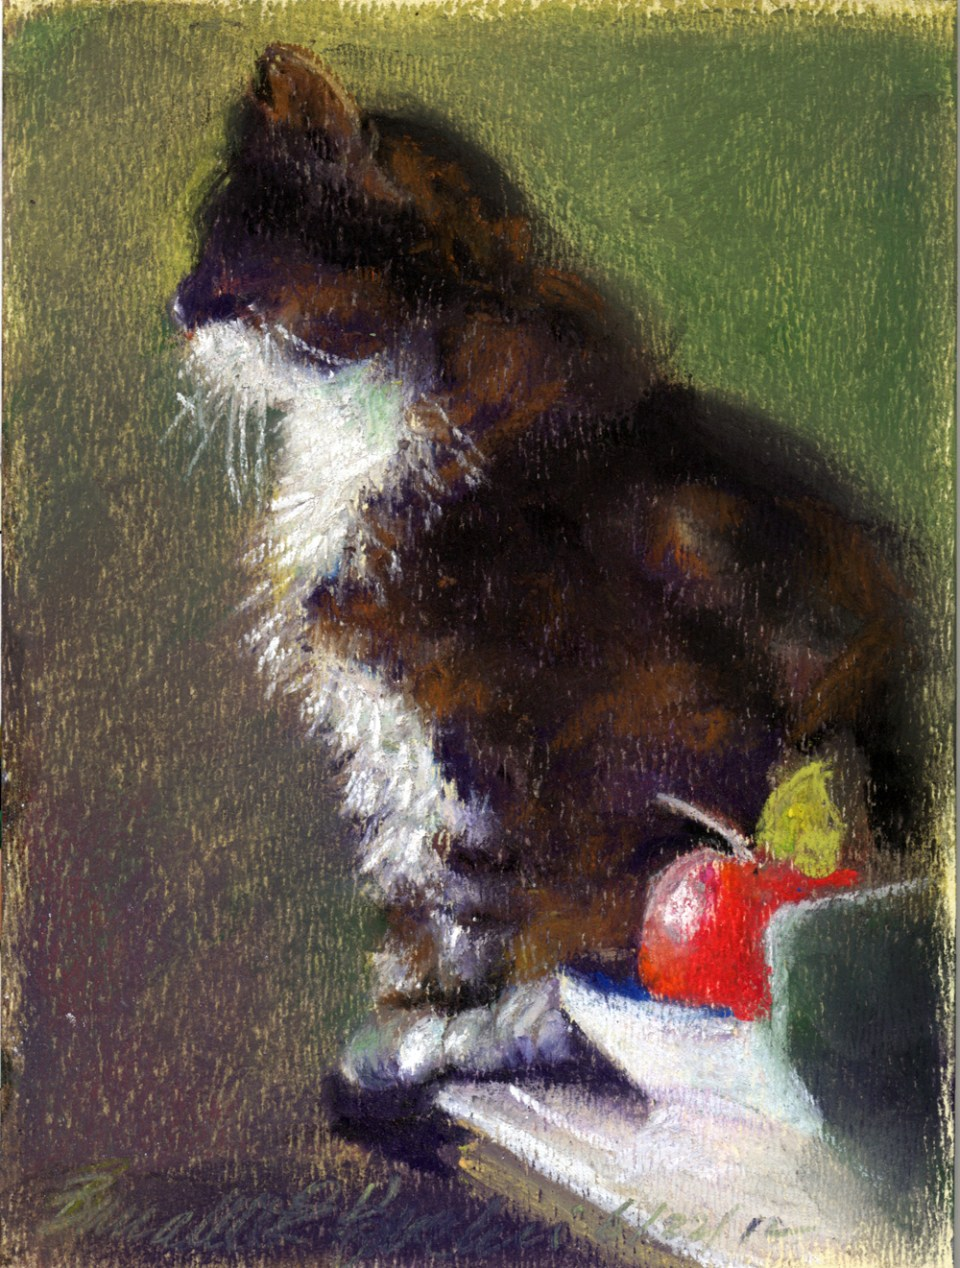 pastel sketch of cat on table with apple